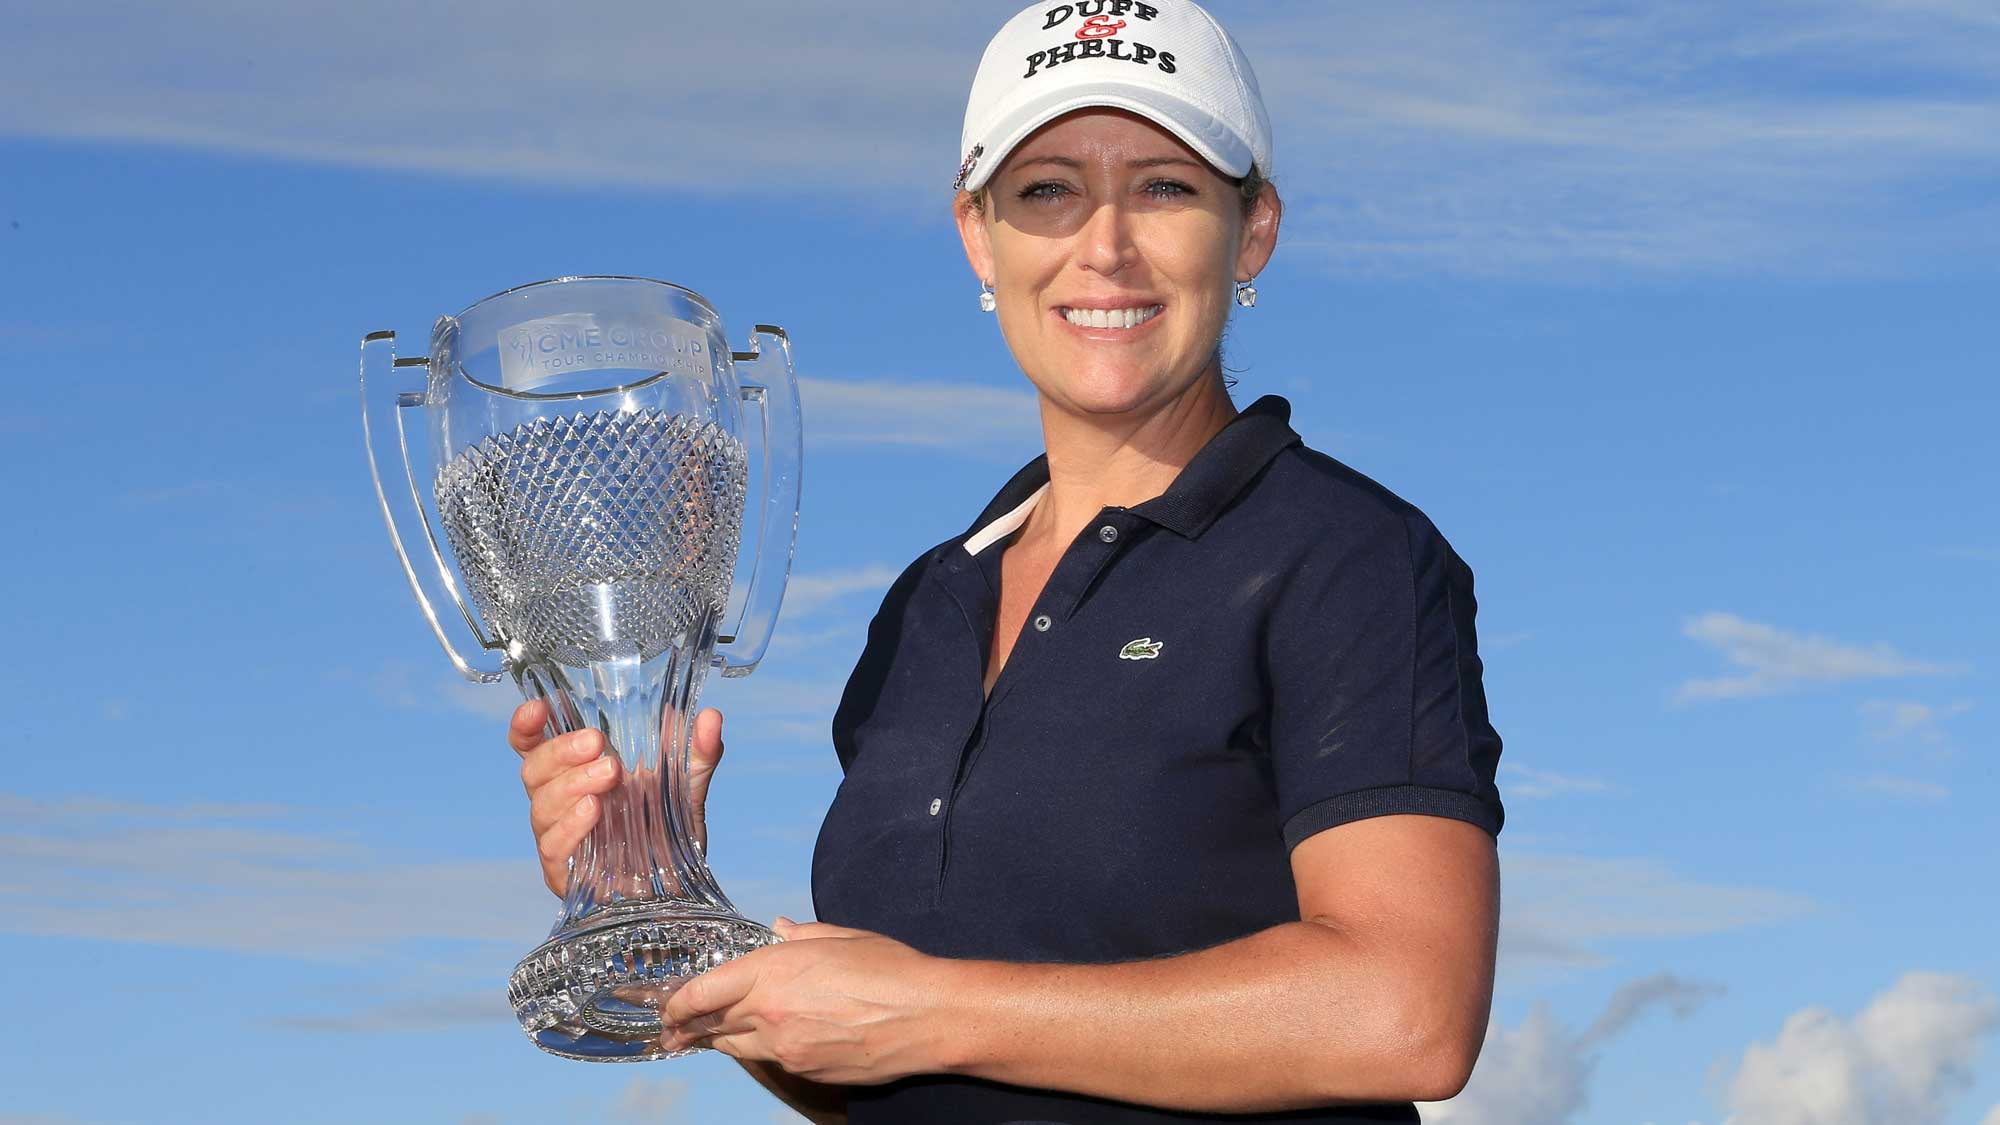 Cristie Kerr of the United States poses with the CME Tour Championship trophy during the final round of the CME Group Tour Championship at Tiburon Golf Club